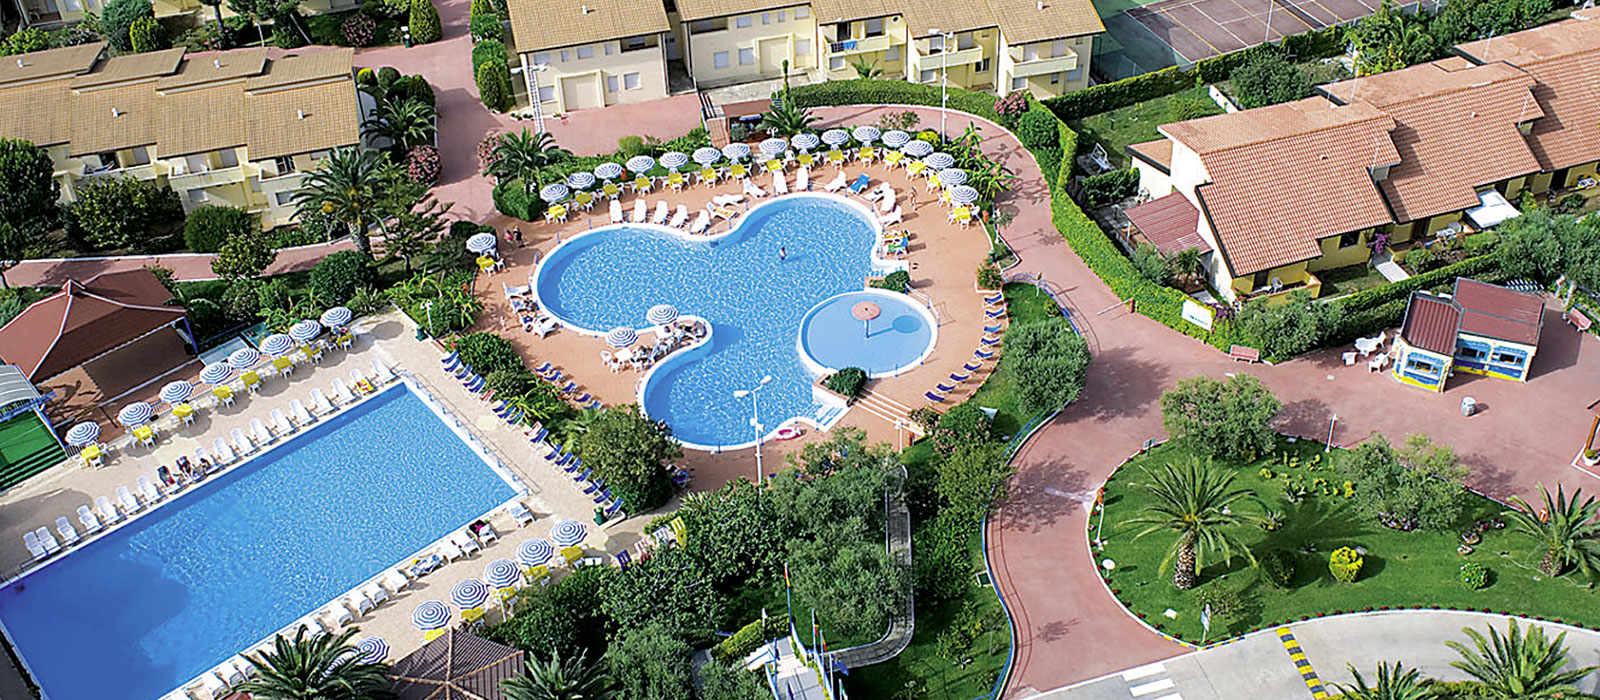 LA PACE VILLAGGIO CLUB